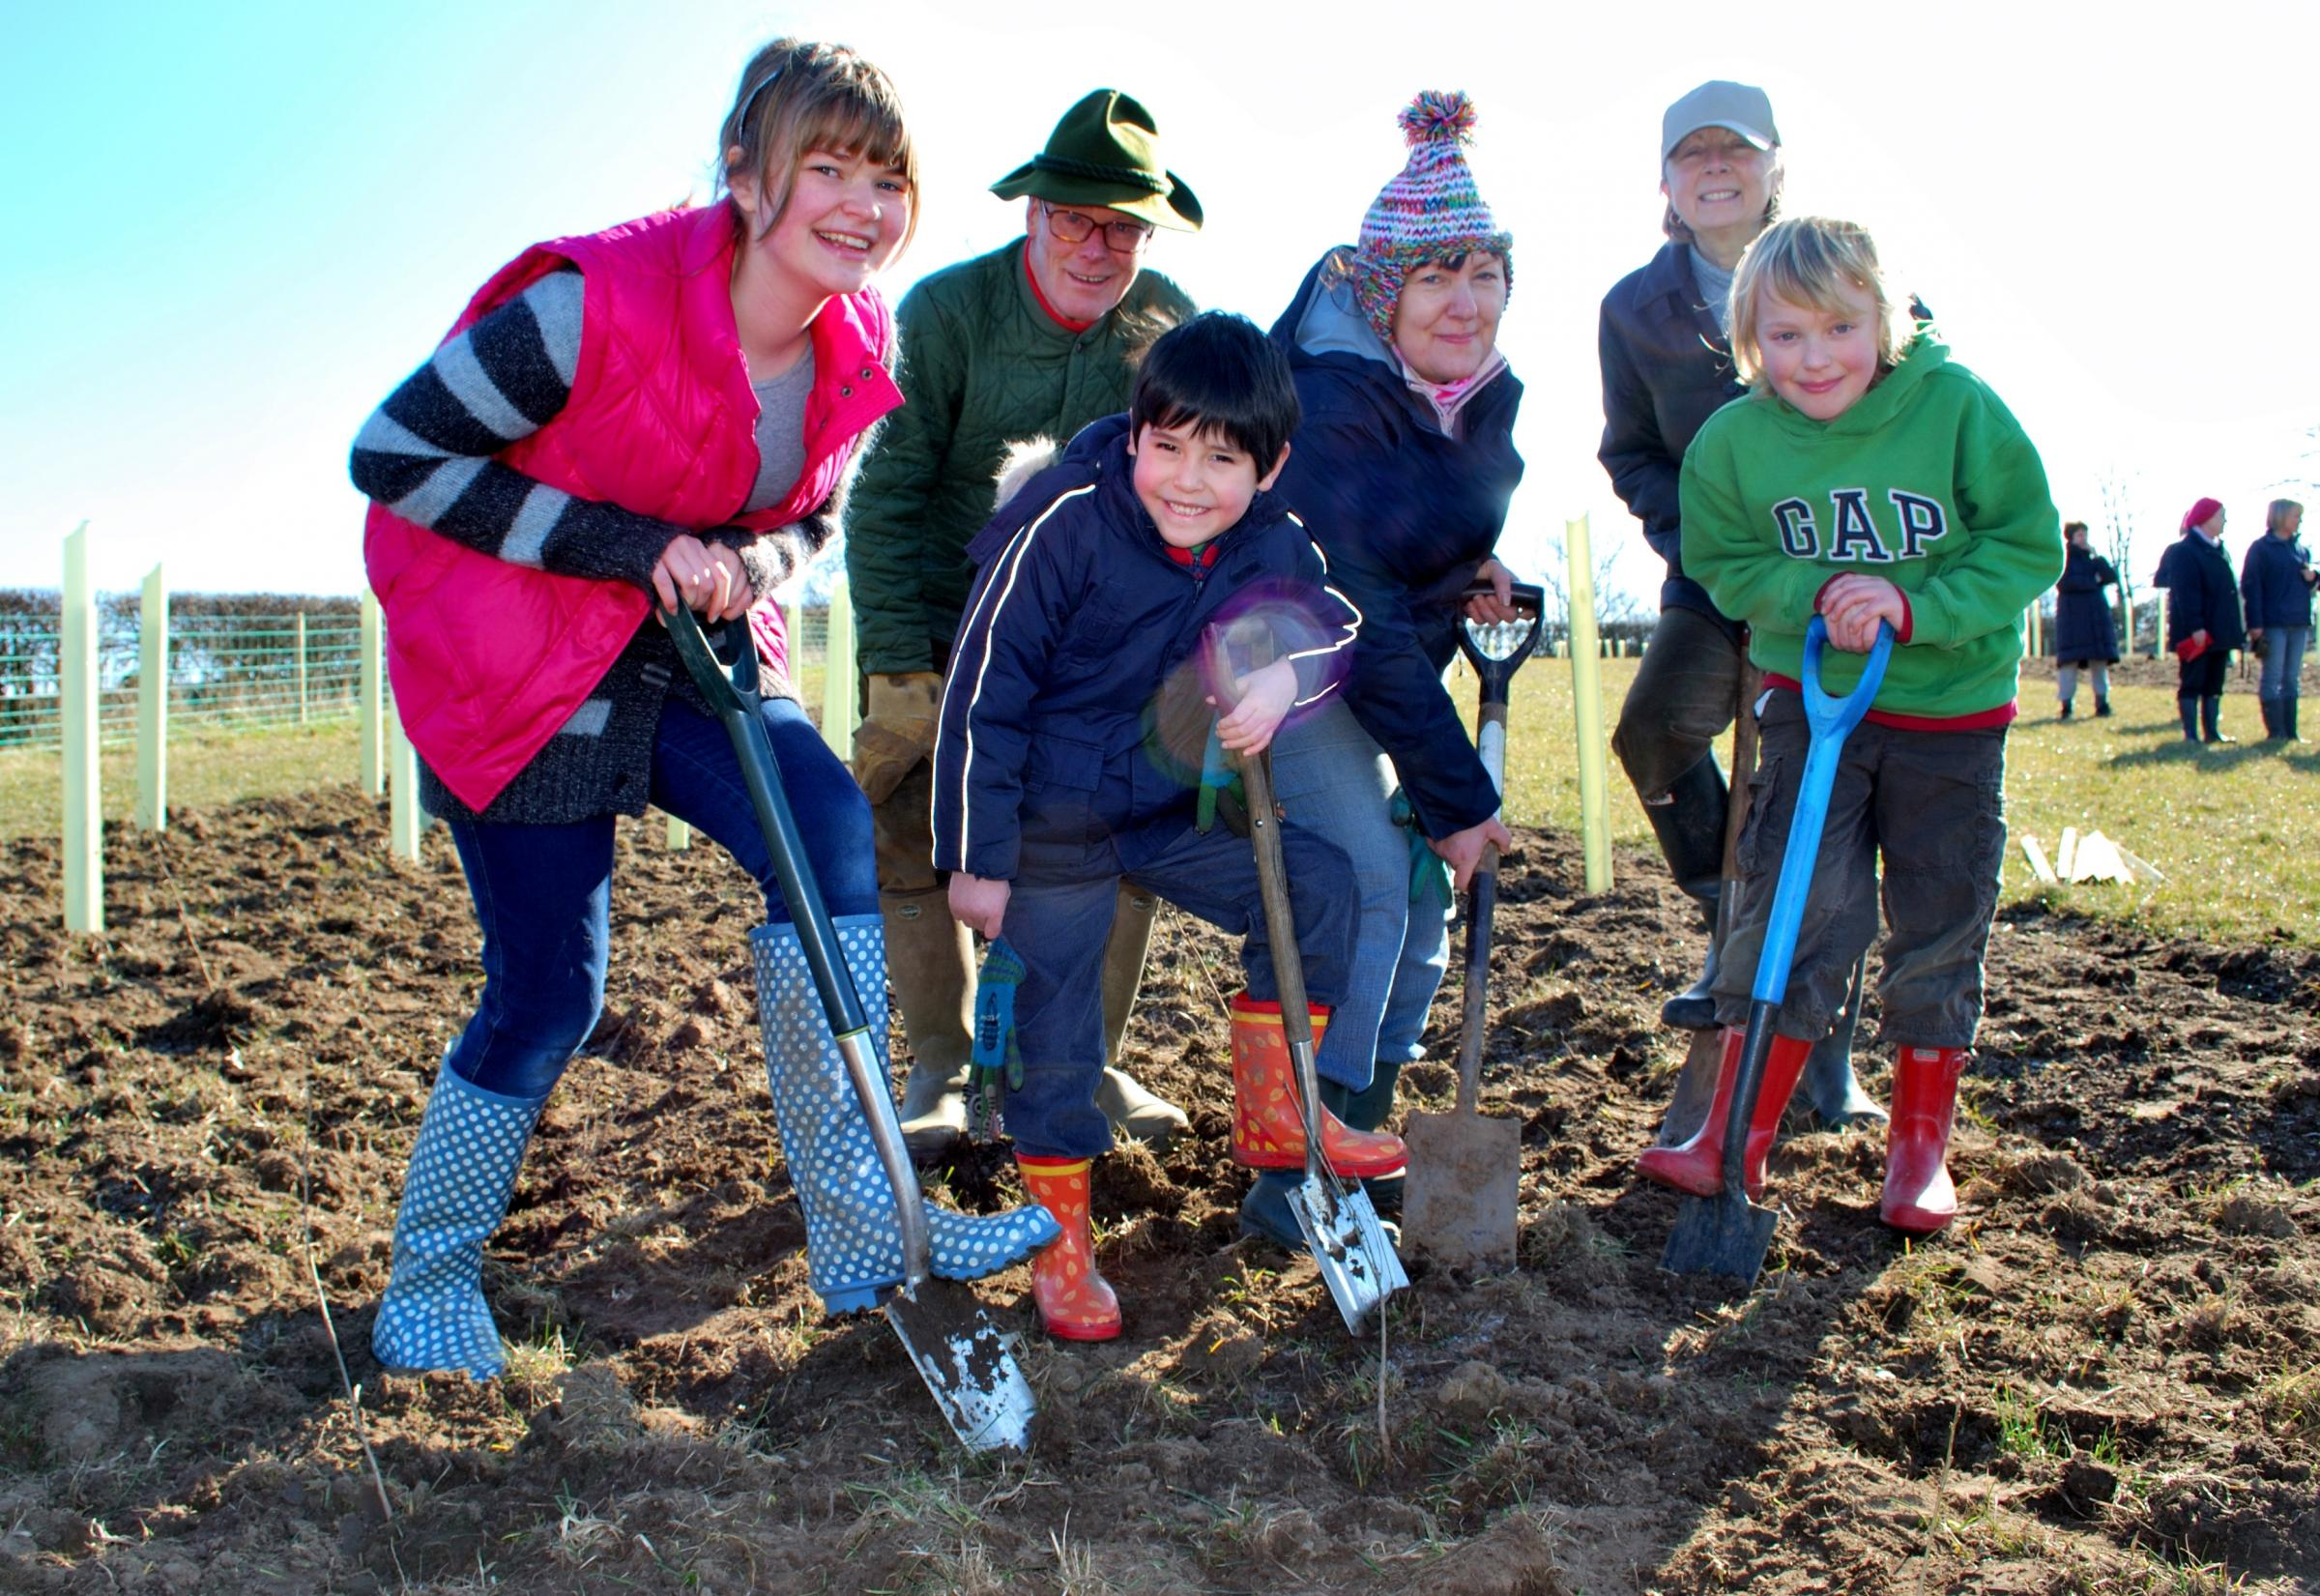 Volunteers pitch in to help plant 600 trees near Holtby, a project funded by a £2000 grant from the Two Ridings Community Foundation.